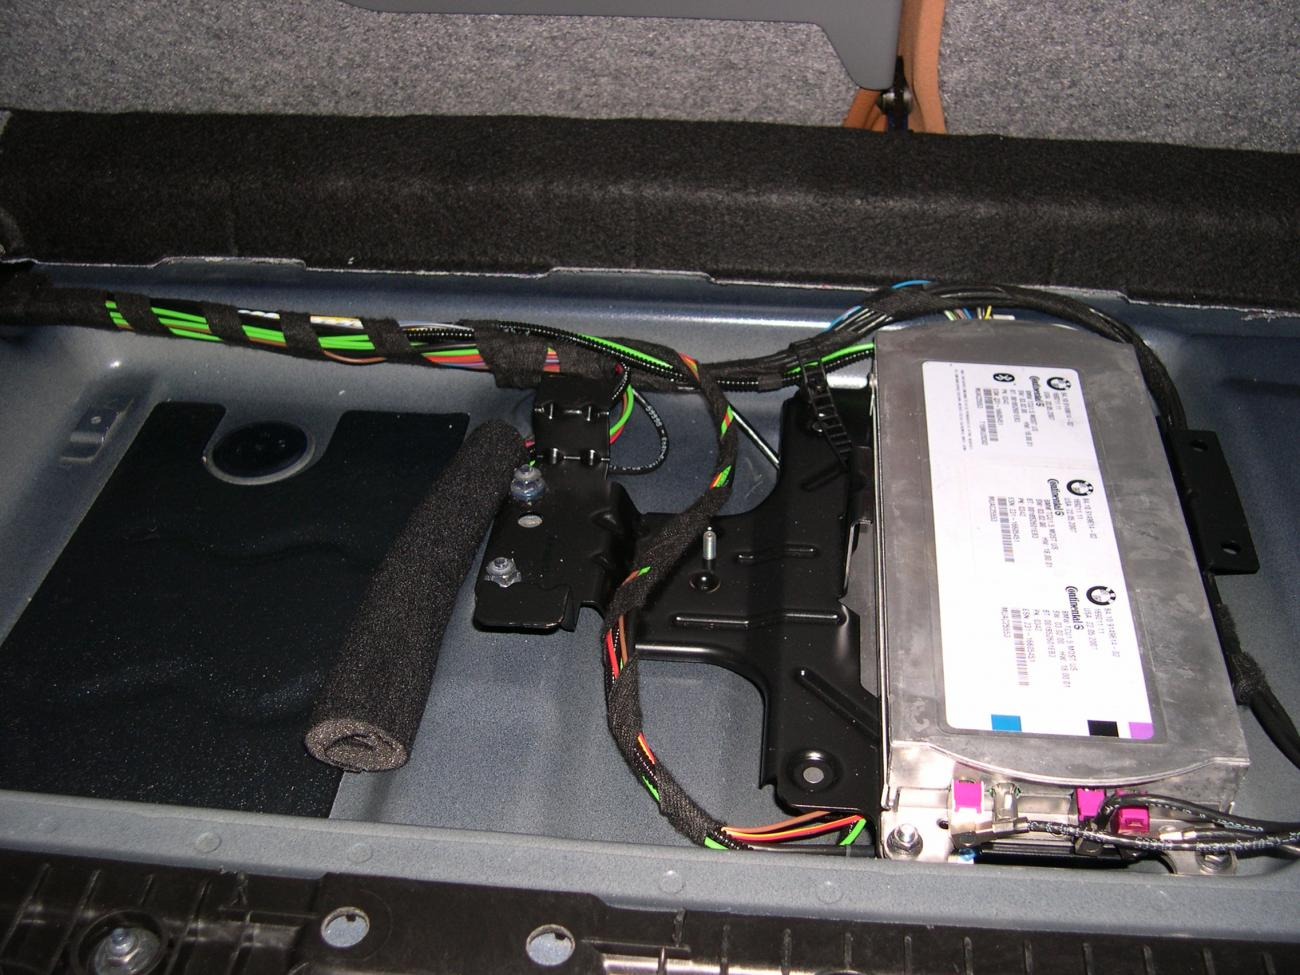 06 Bmw 325xi Fuse Box Diagram Manual Of Wiring 325i 335i Battery Location Get Free Image About 2006 E90 Layout